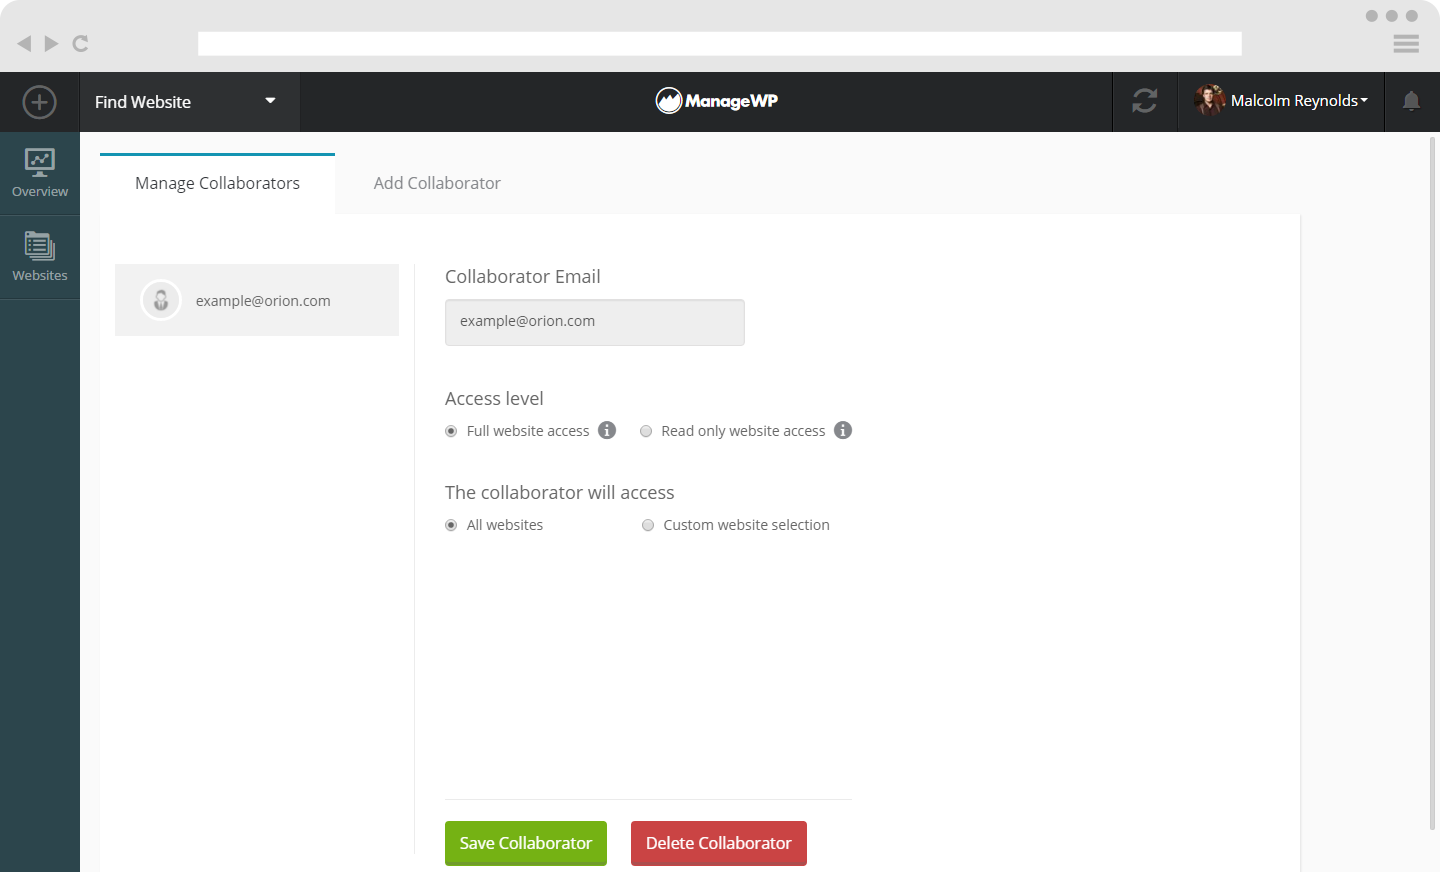 Manage your collaborators